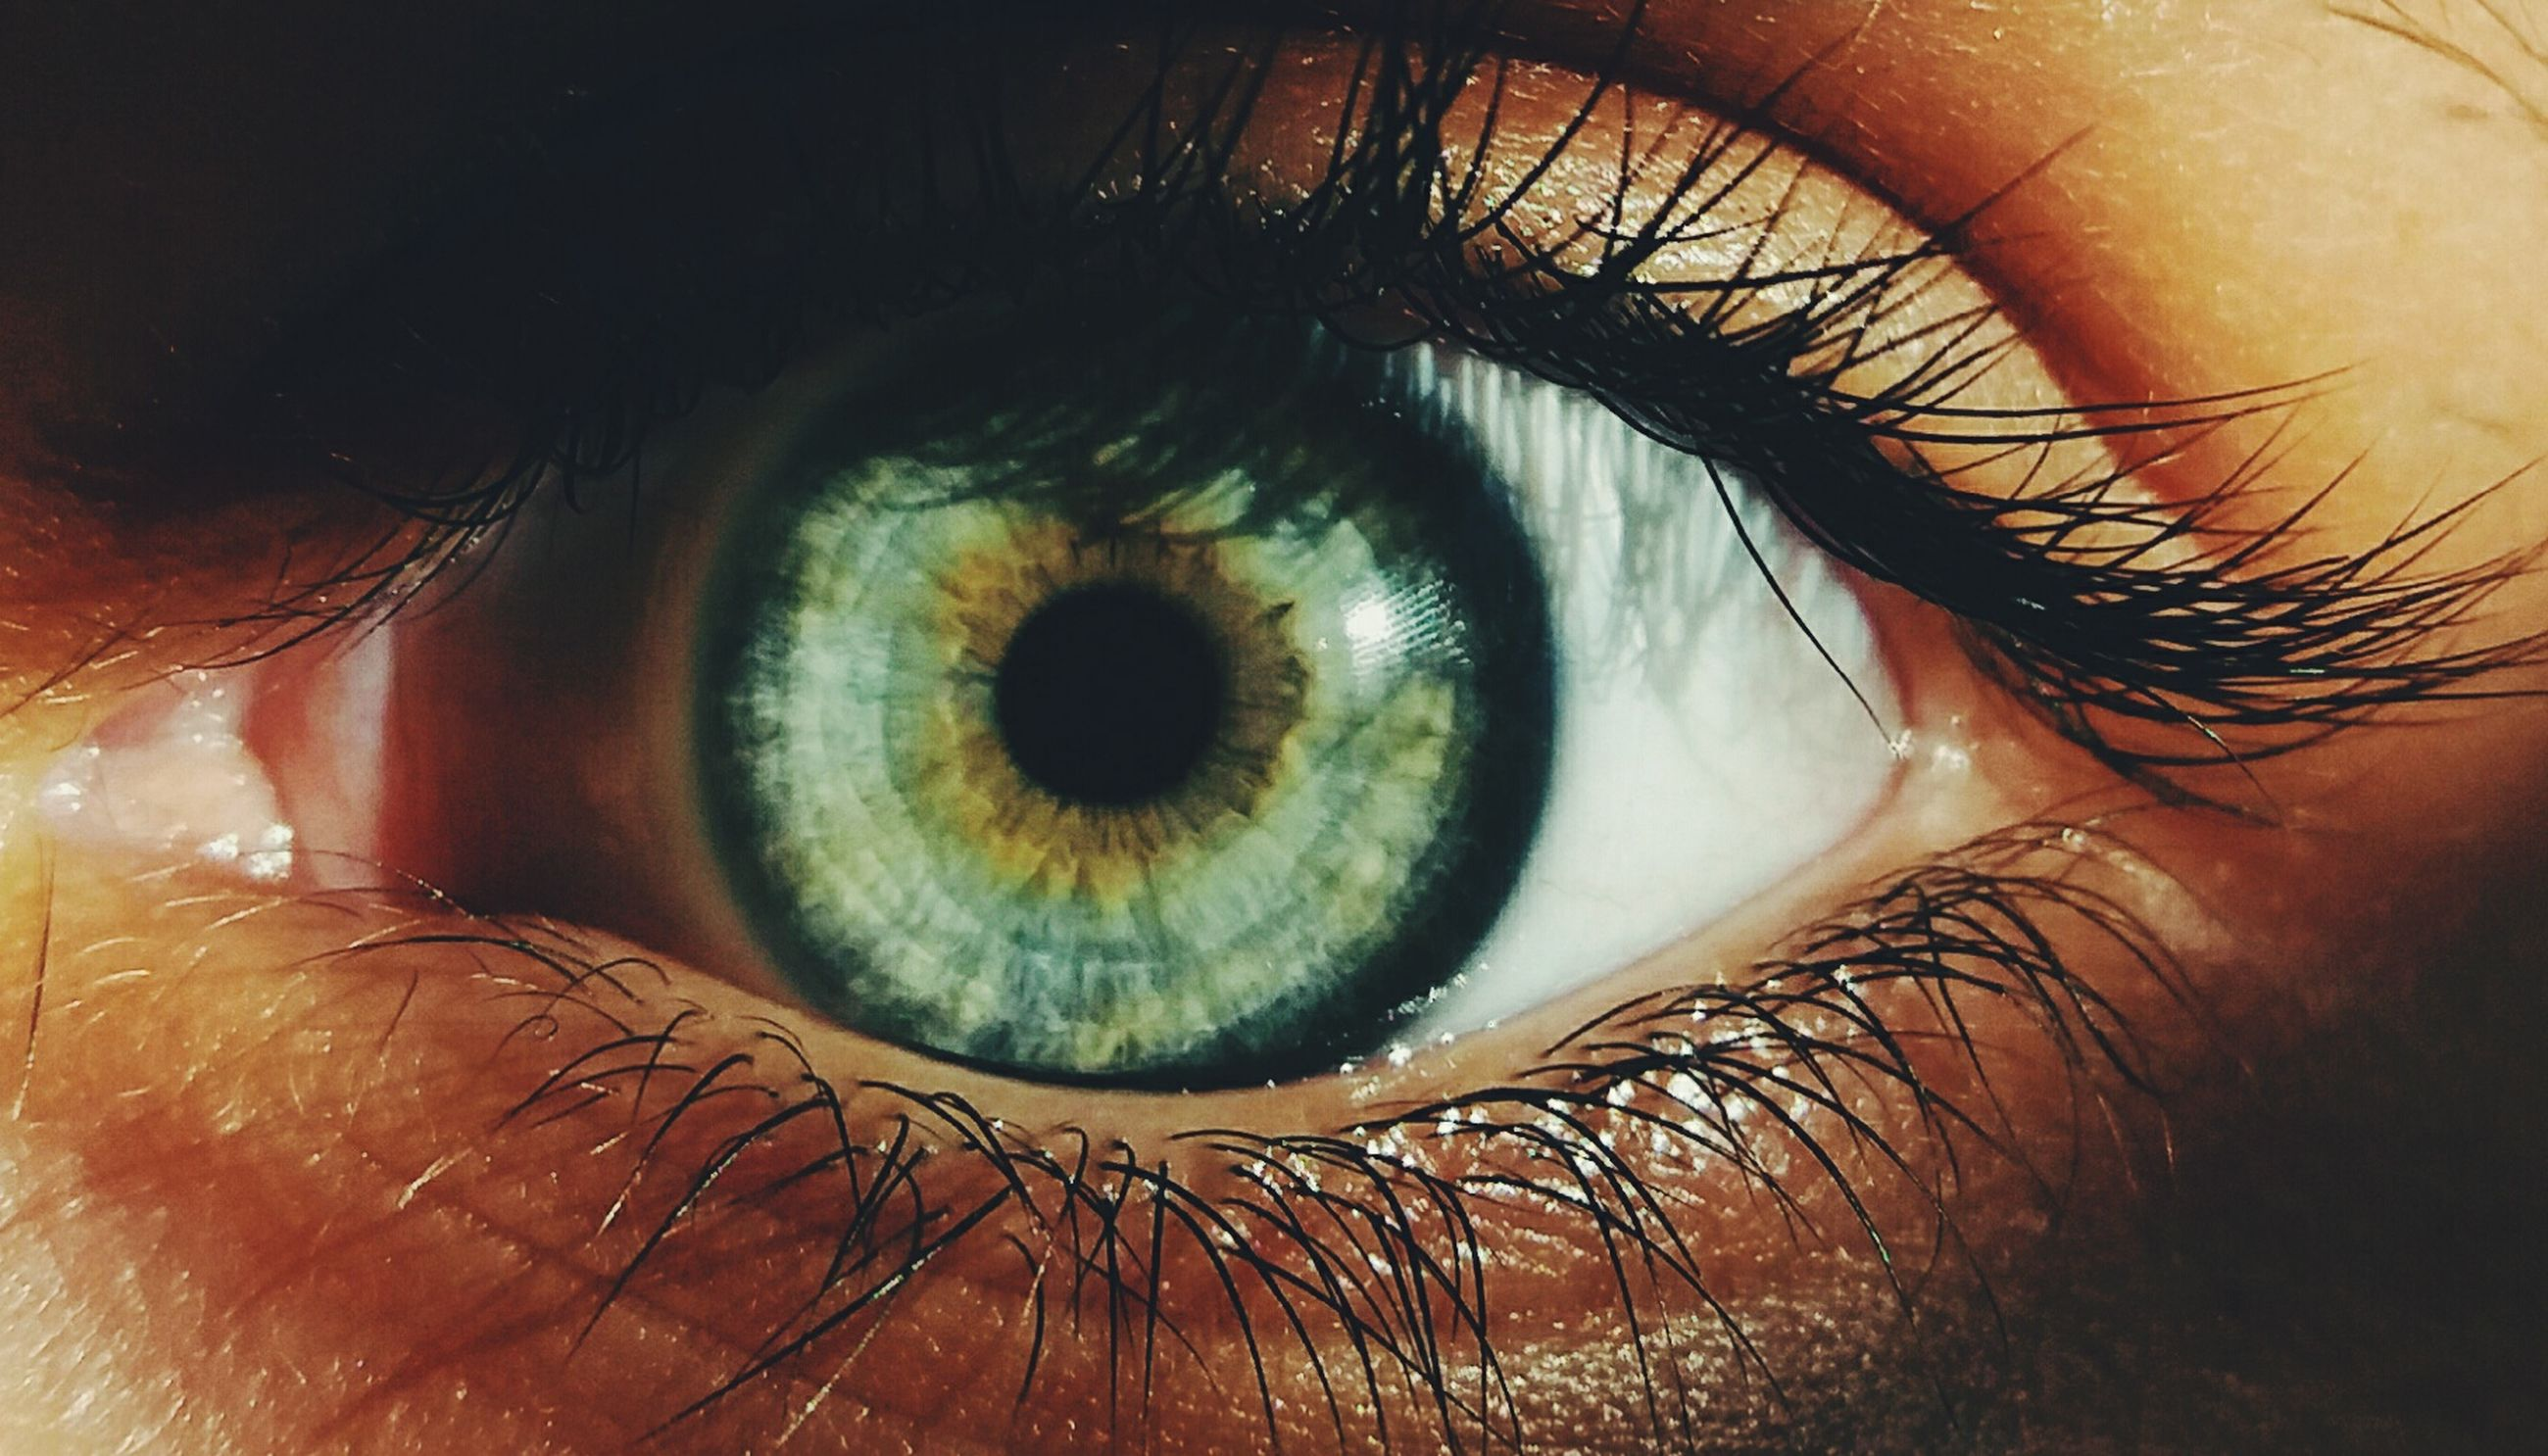 human eye, eyelash, eyesight, human body part, iris - eye, eyeball, real people, looking at camera, macro, extreme close-up, one person, close-up, sensory perception, people, portrait, young adult, outdoors, adults only, adult, day